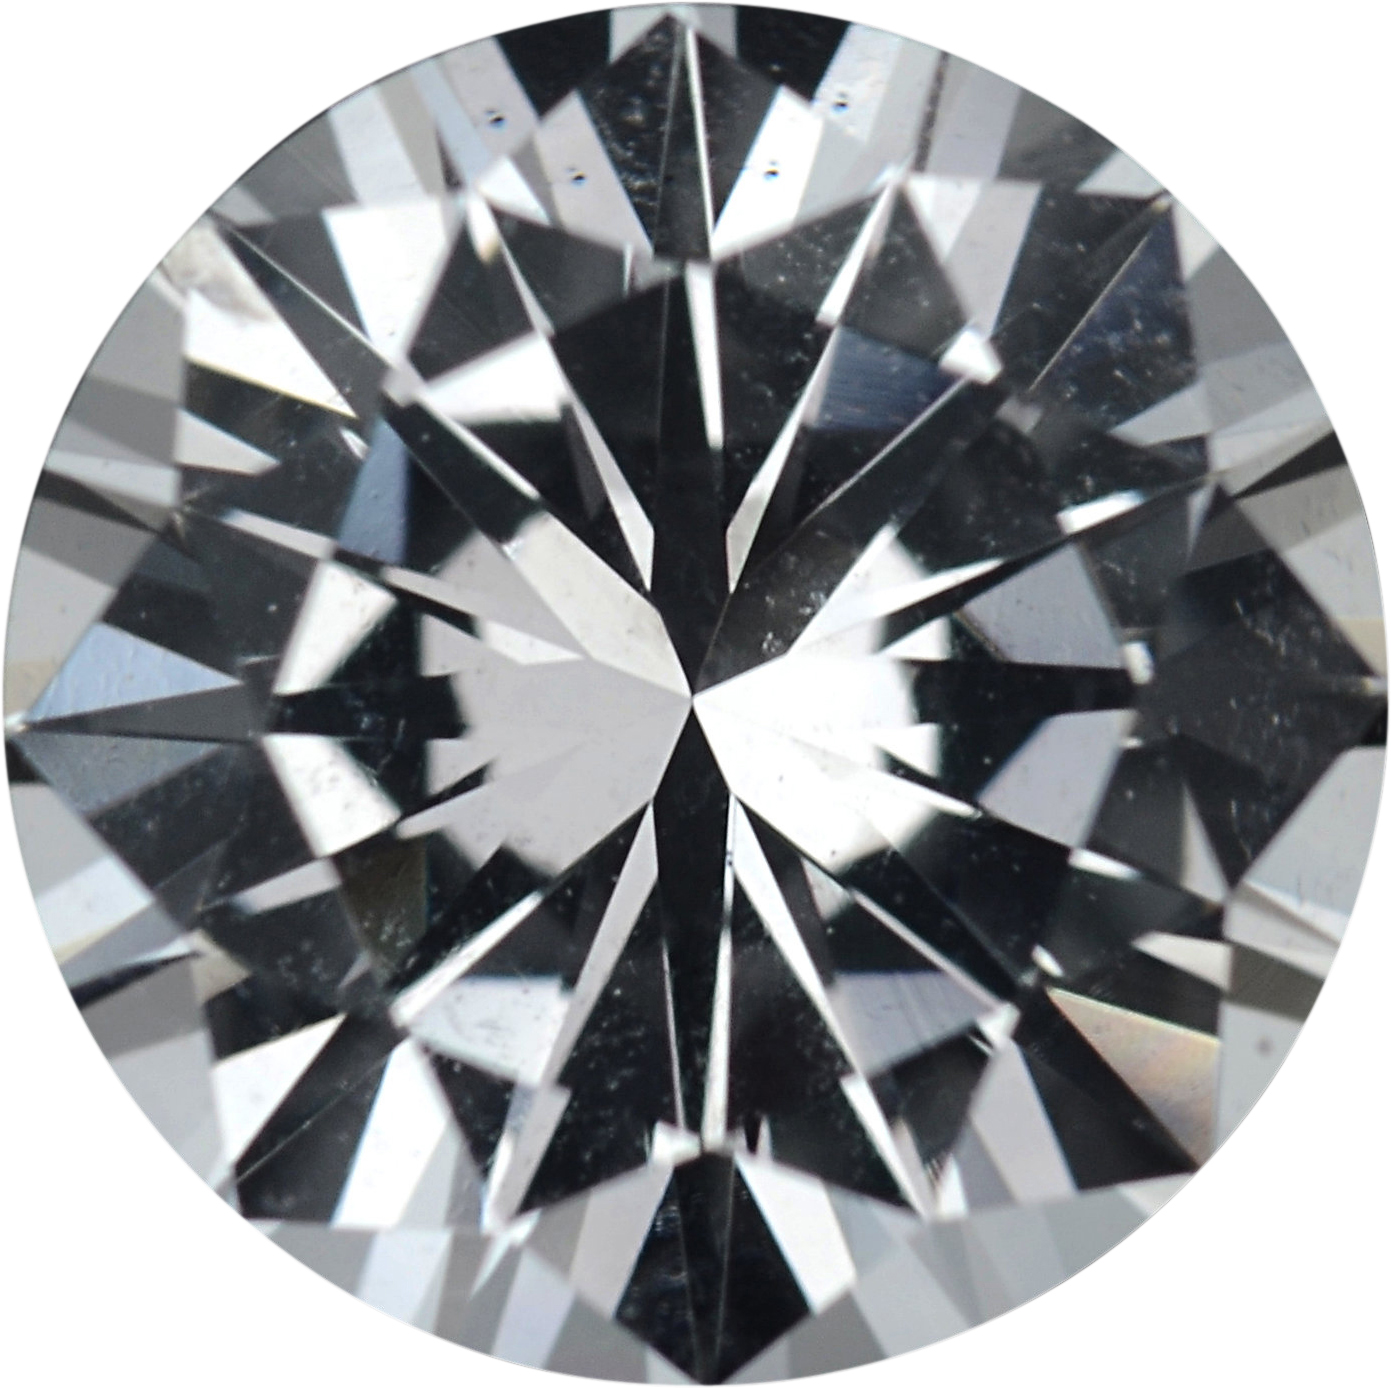 Great Deal on Loose White Sapphire Gem in Round Cut, Near Colorless, 7.03 mm, 1.47 carats